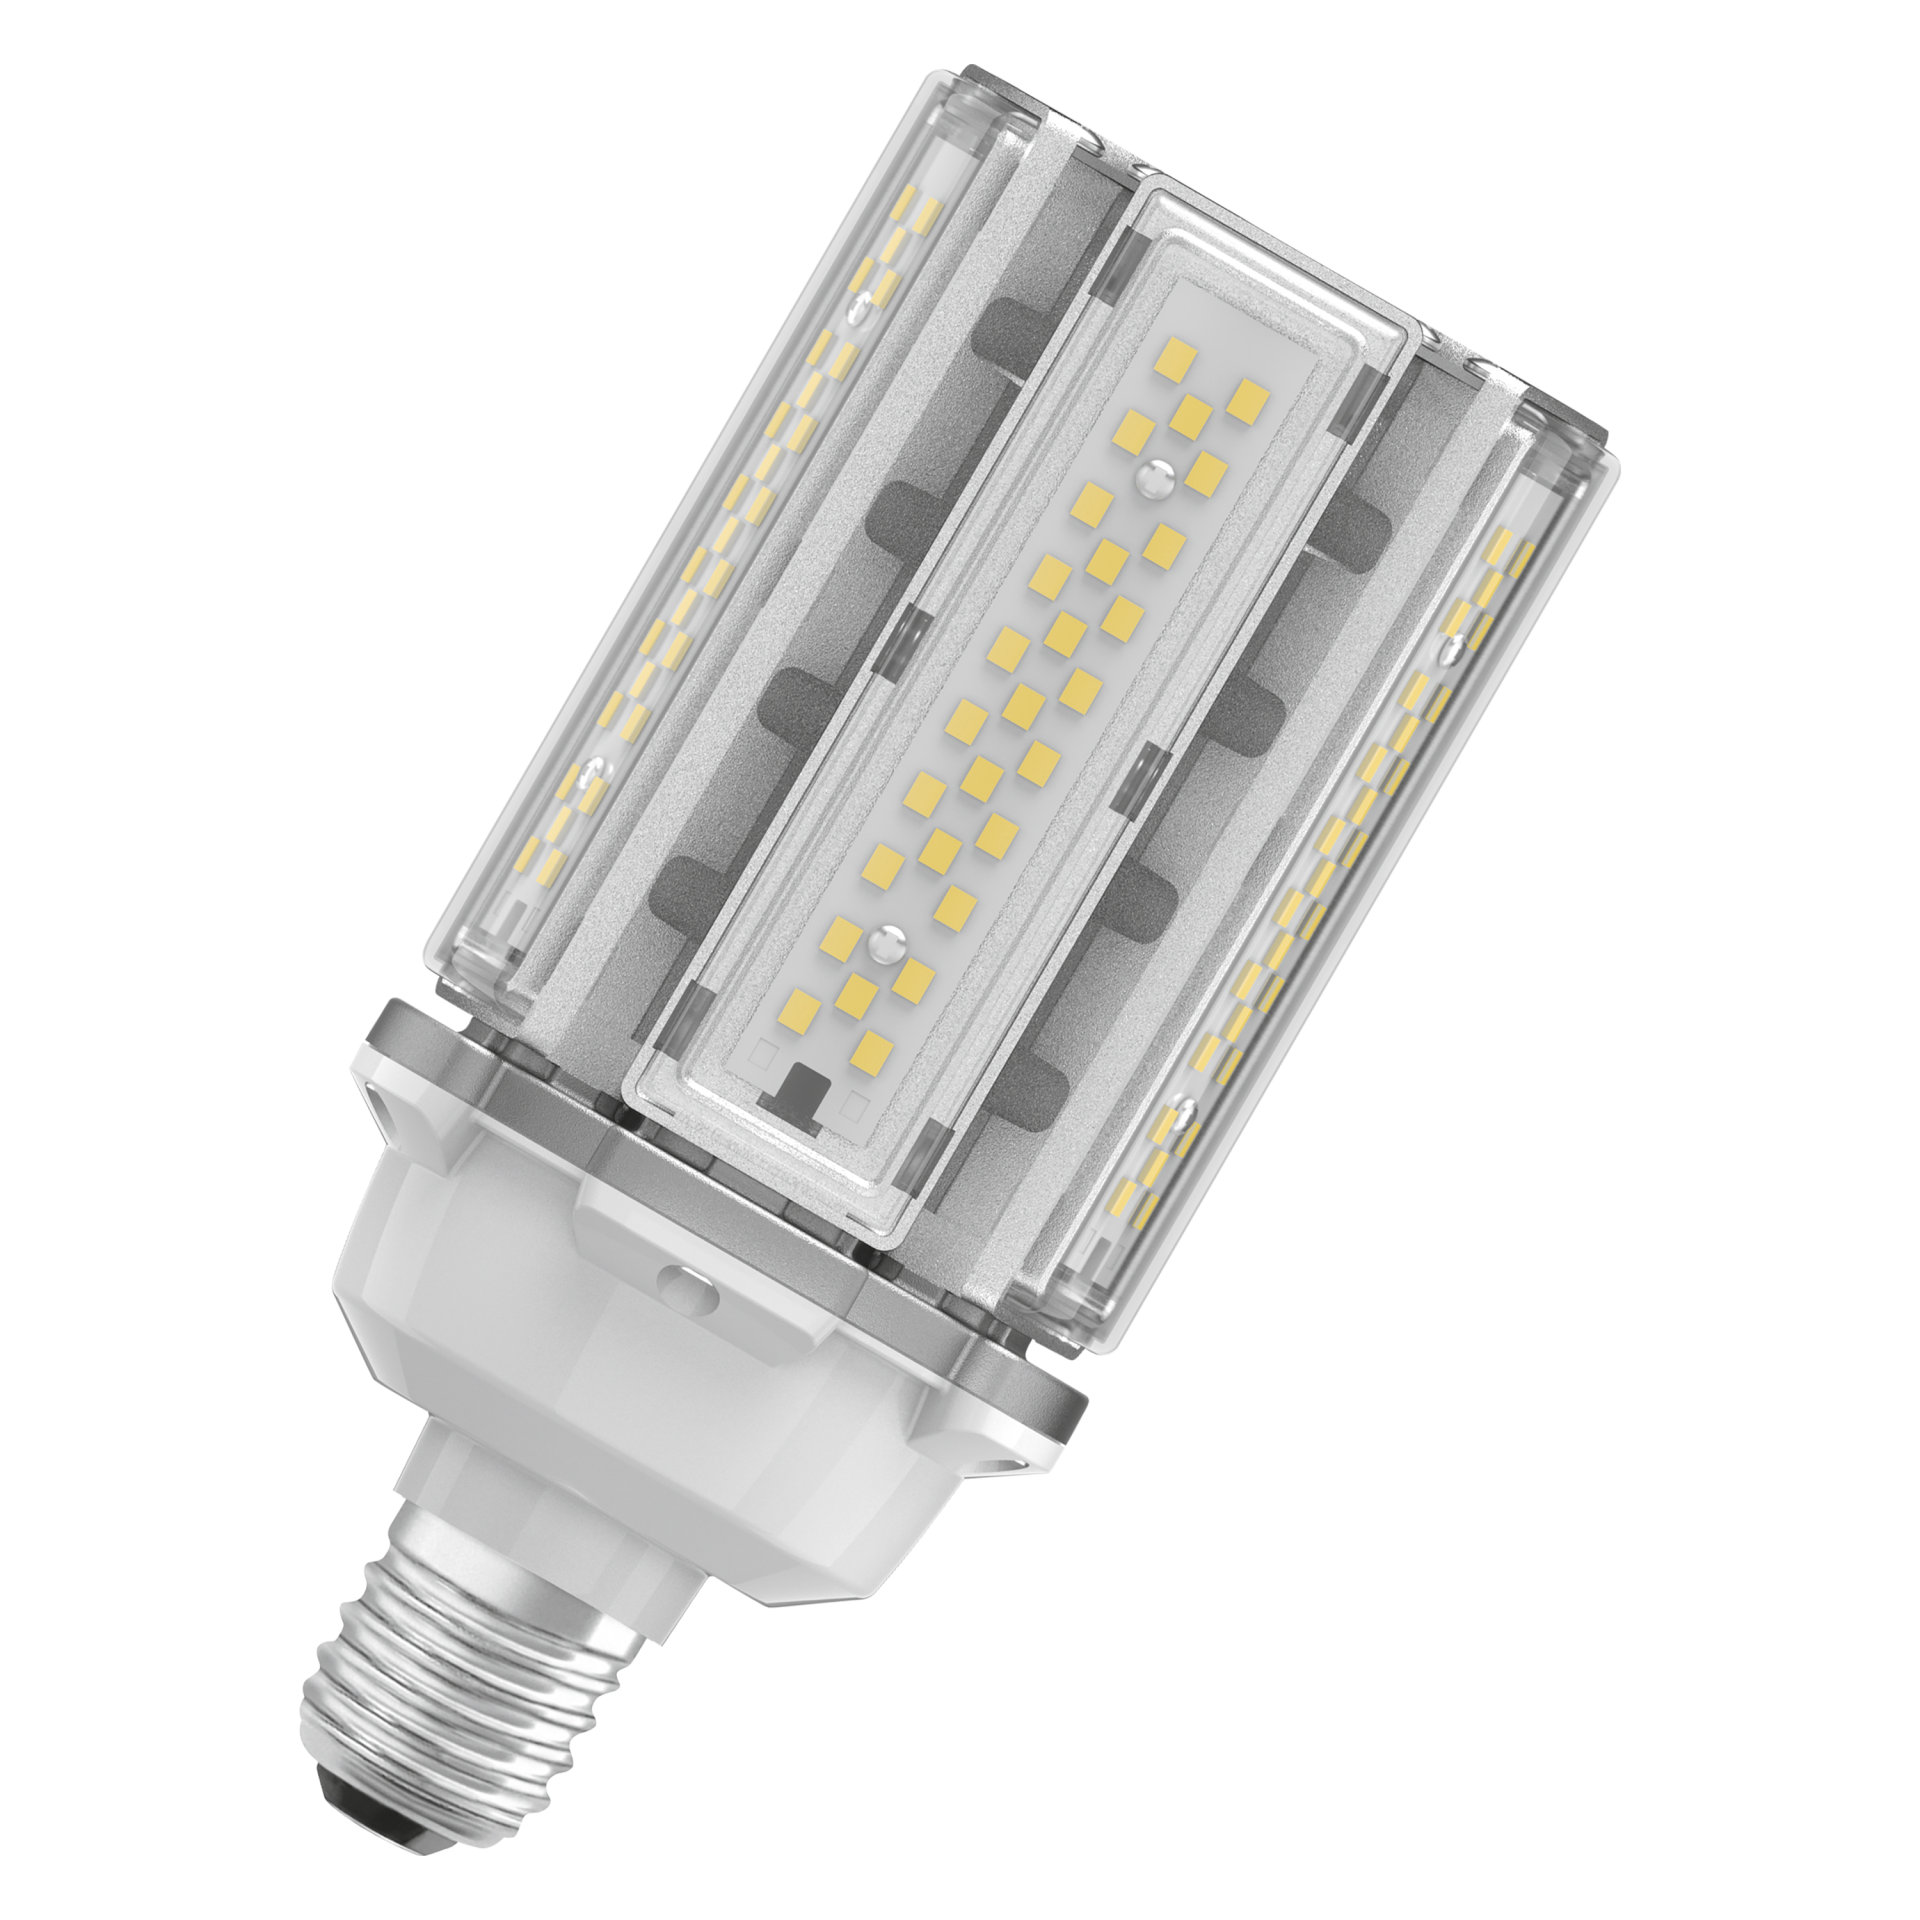 LED replacement for HID lamps